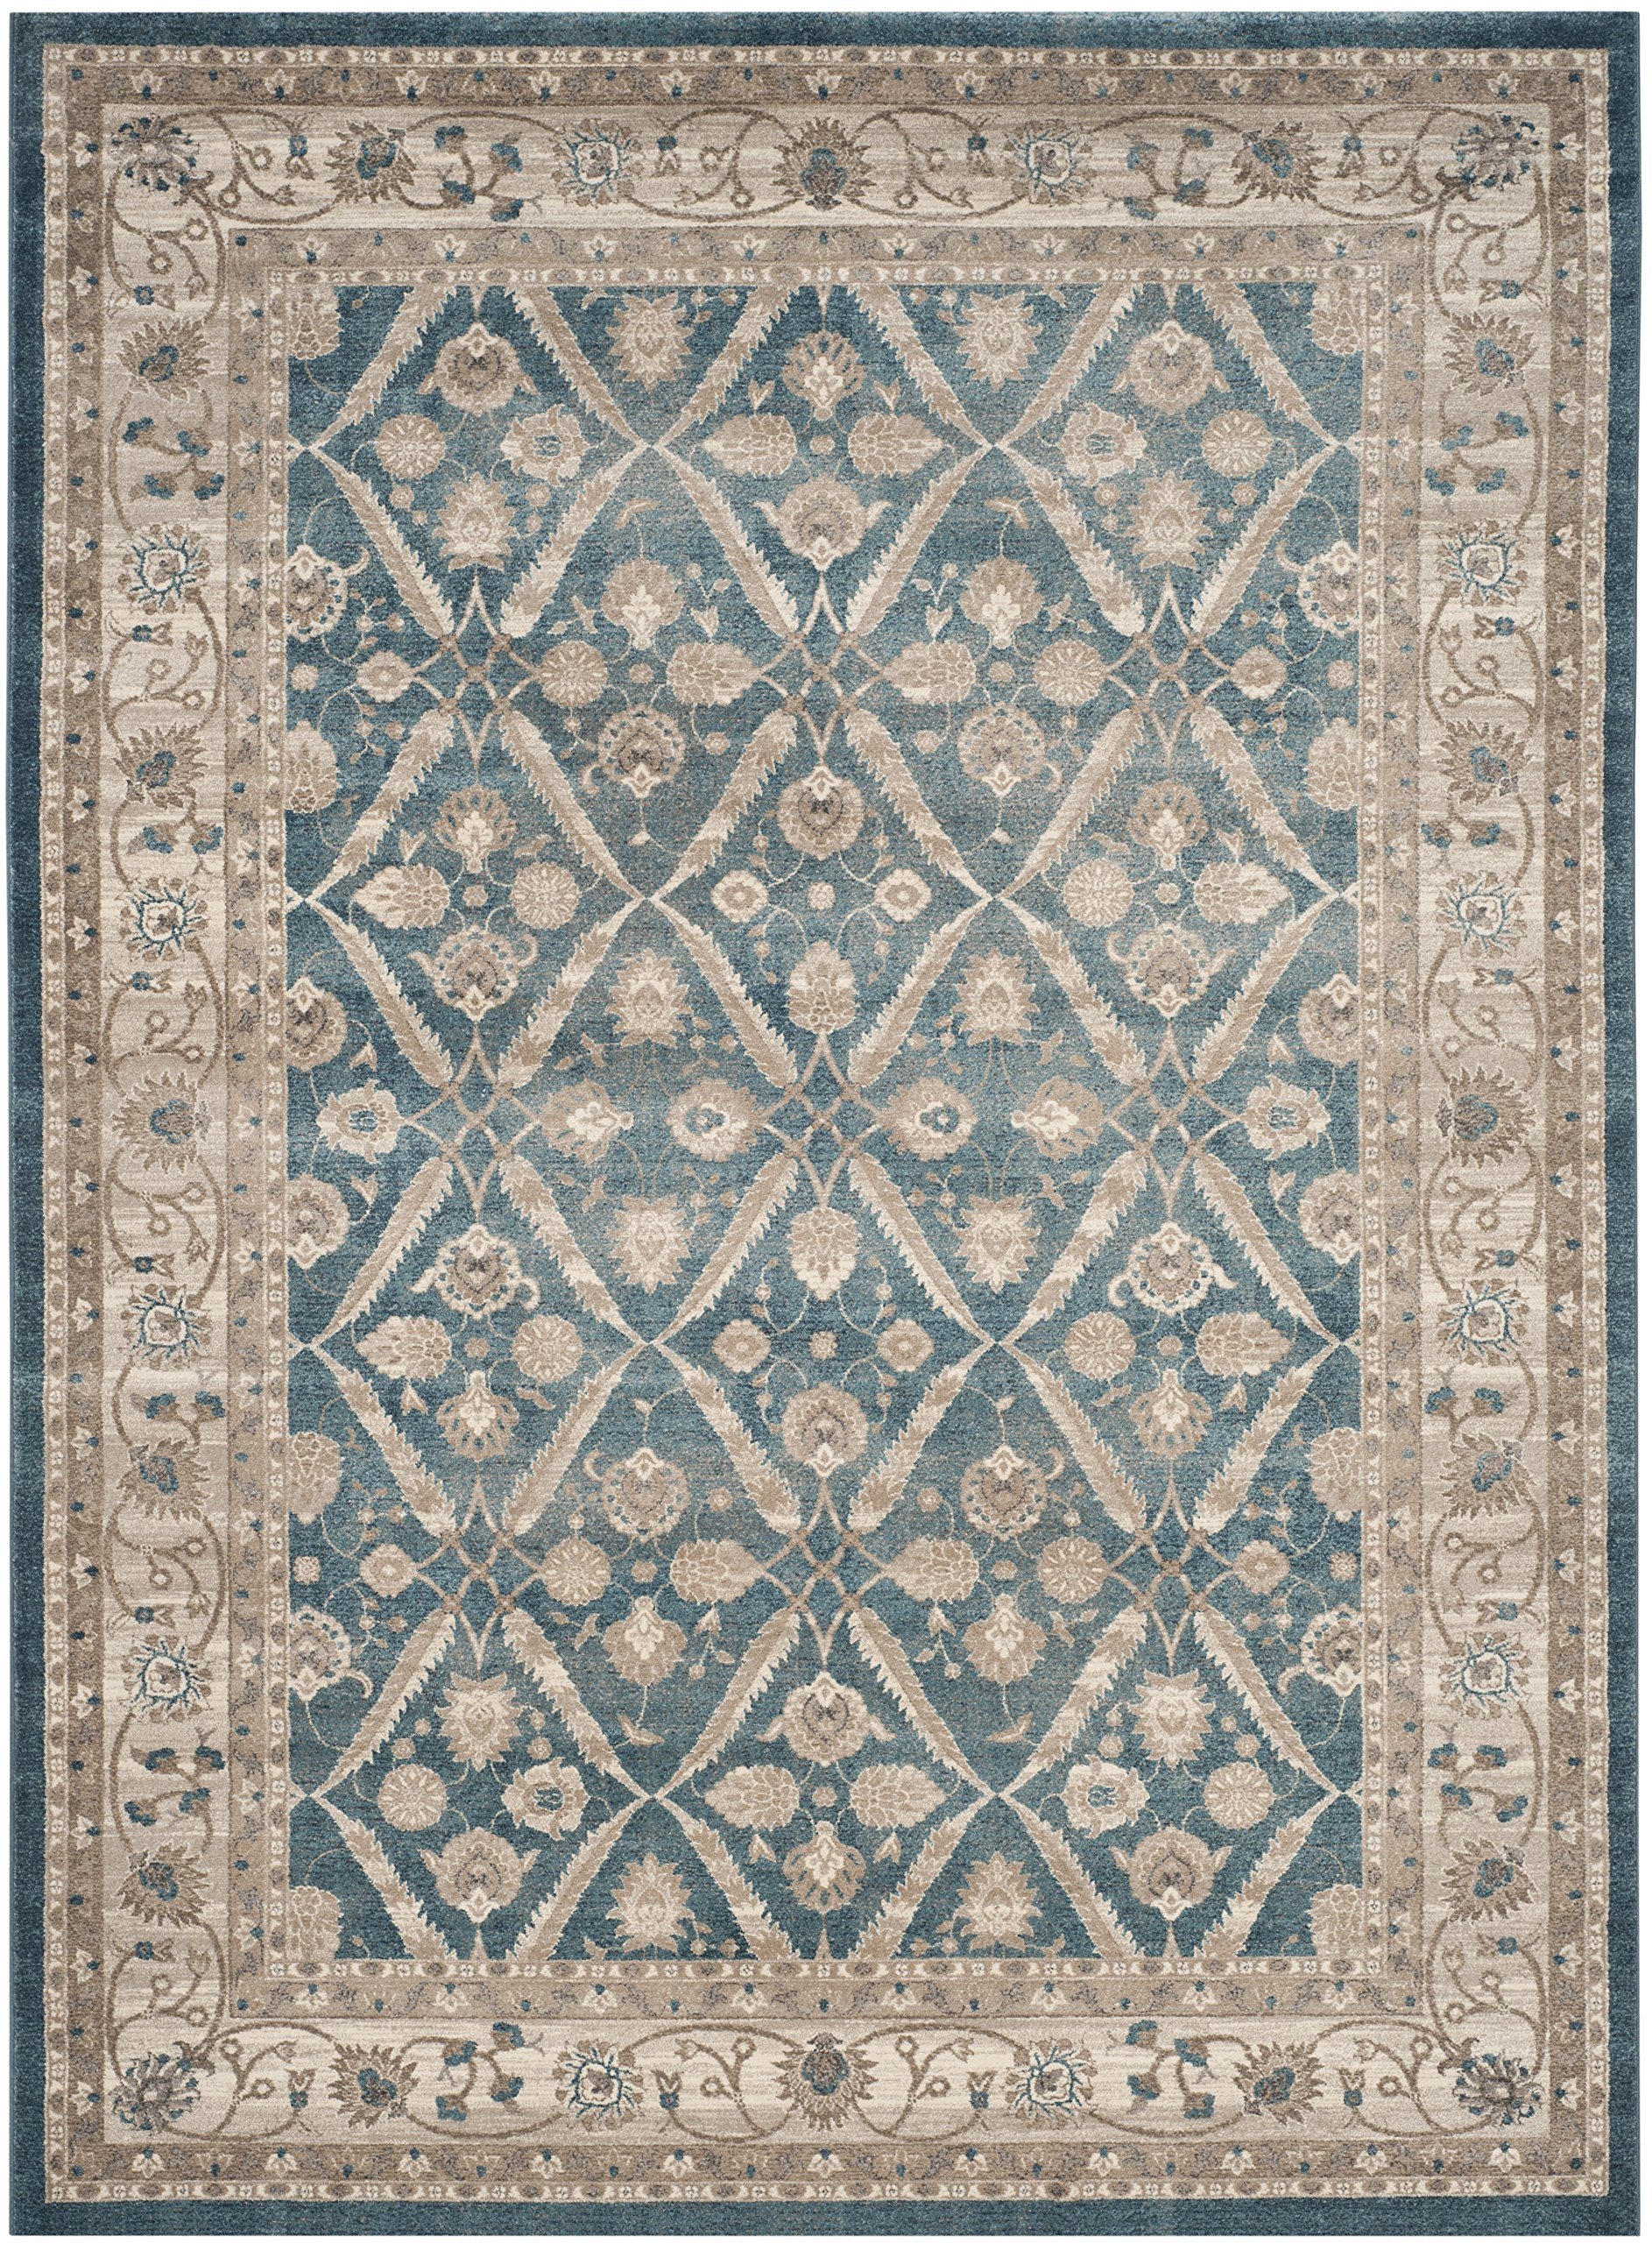 Safavieh Sofia Collection SOF378C Vintage Blue and Beige Distressed Area Rug (8' x 11') by Safavieh